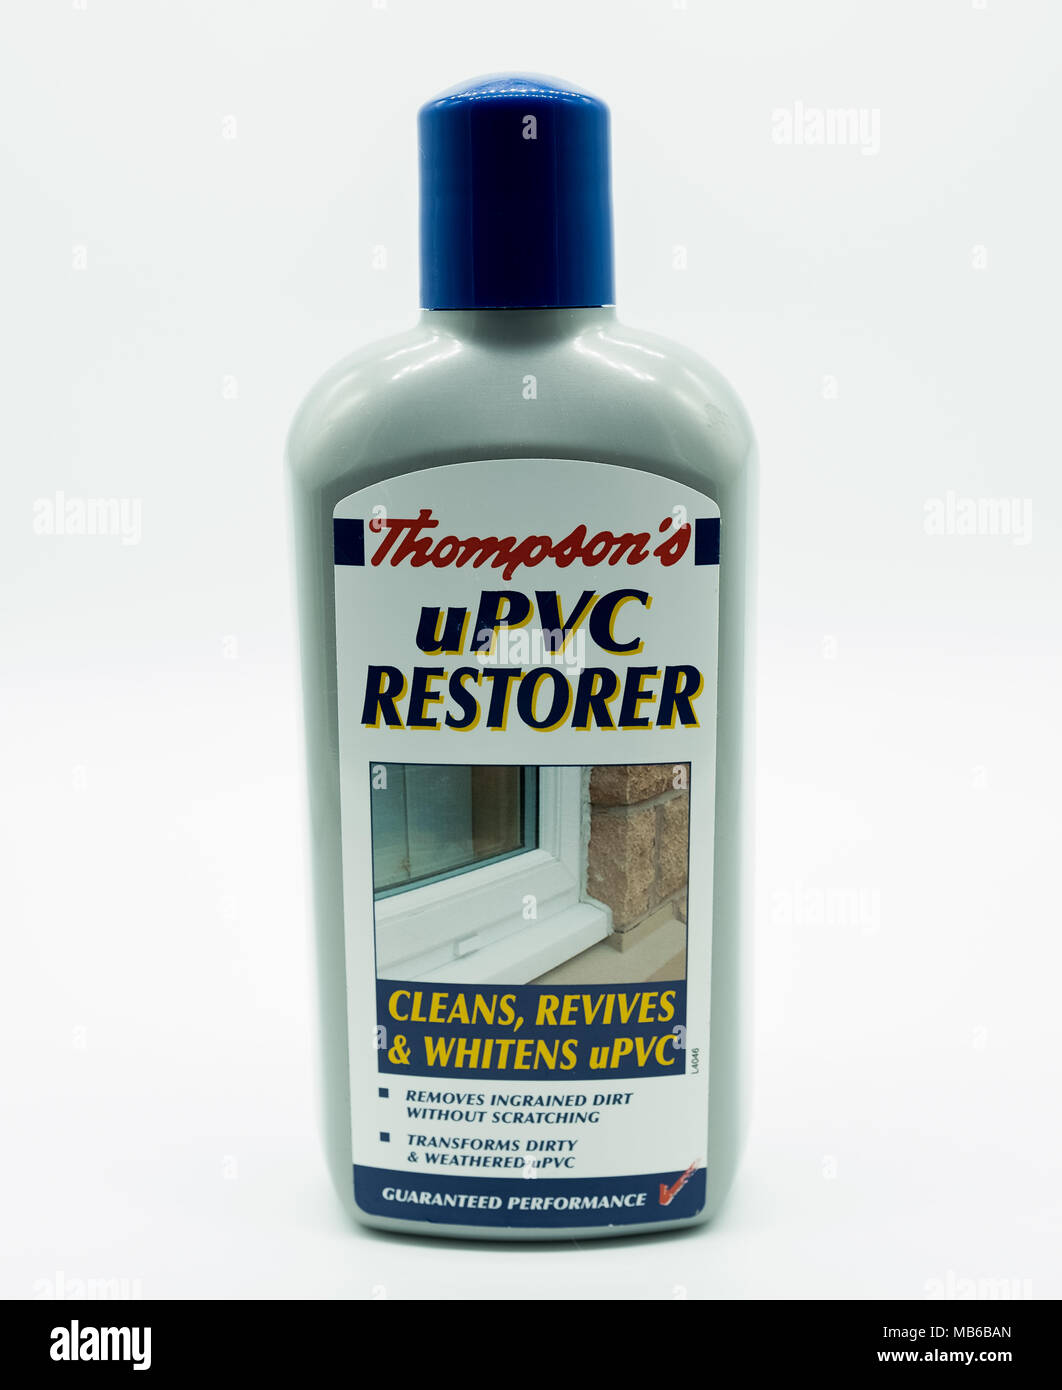 Largs, Scotland, UK - April 06, 2018: Thompson's uPVC restorer in a recyclable plastic bottle in line with UK eco initiatives - Stock Image